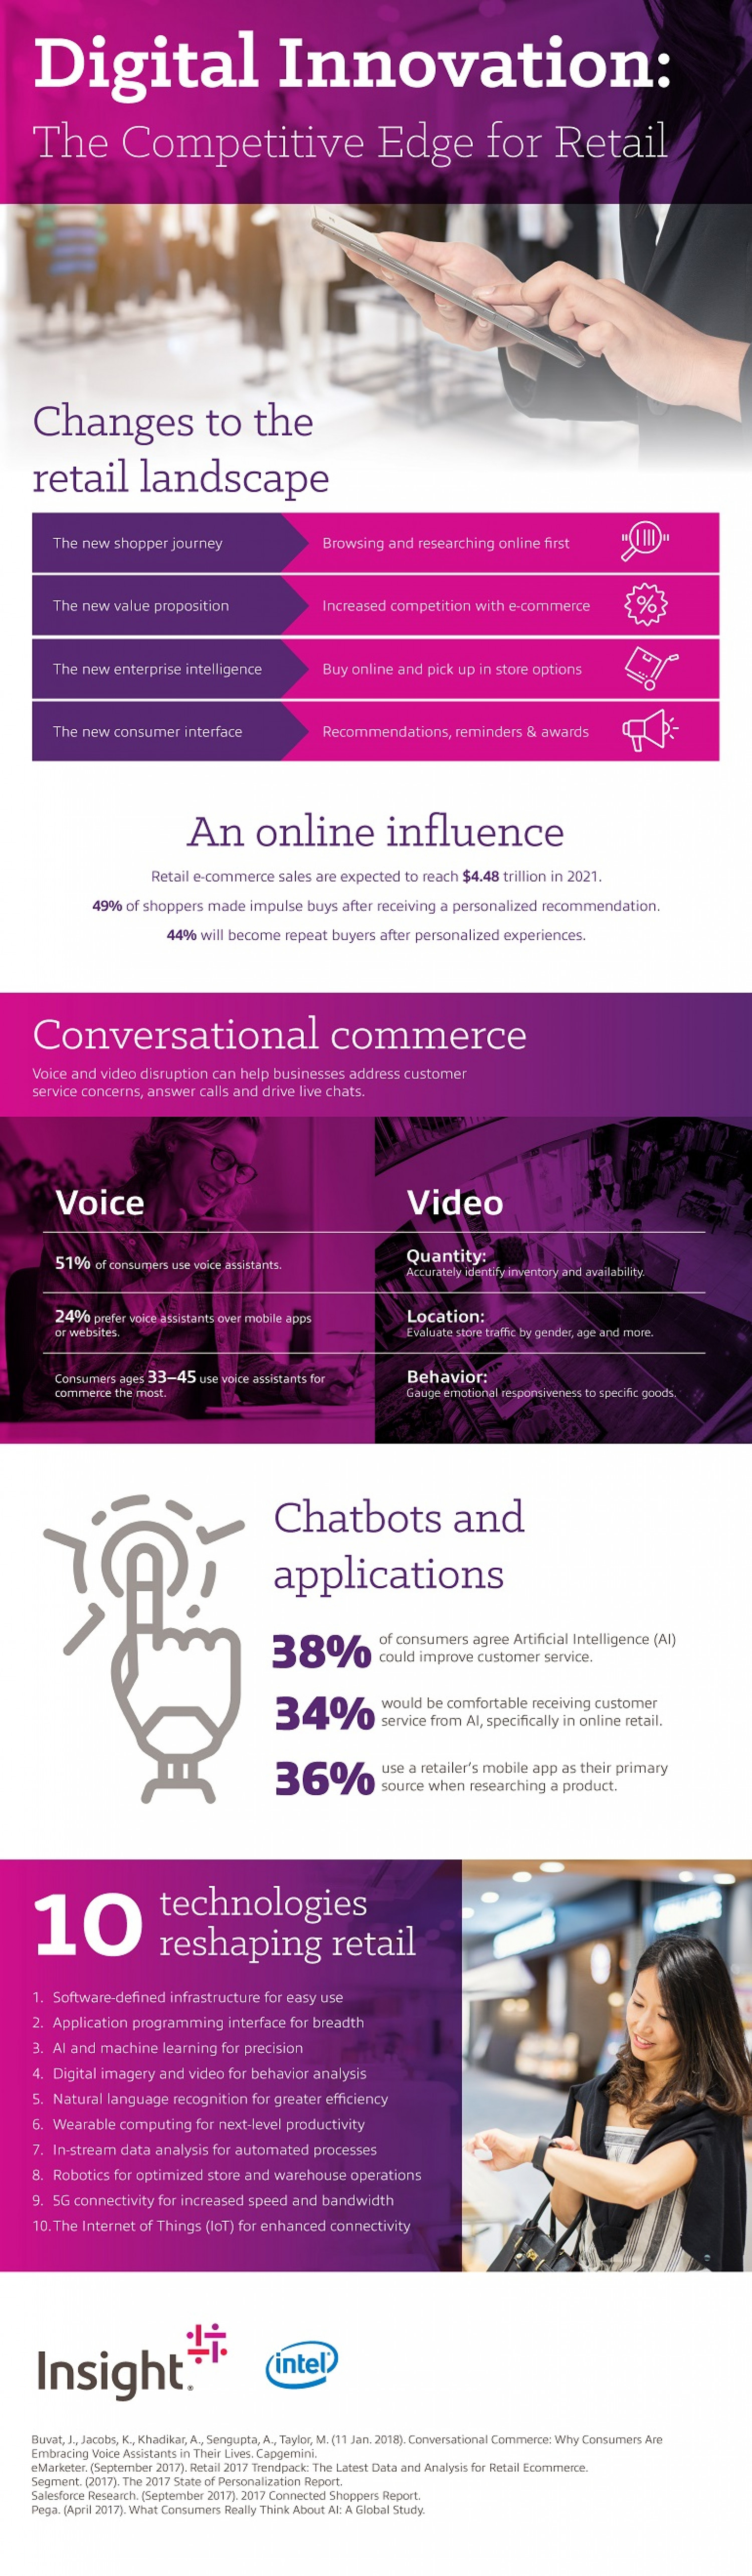 Digital Innovation: The Competitive Edge for Retail Infographic